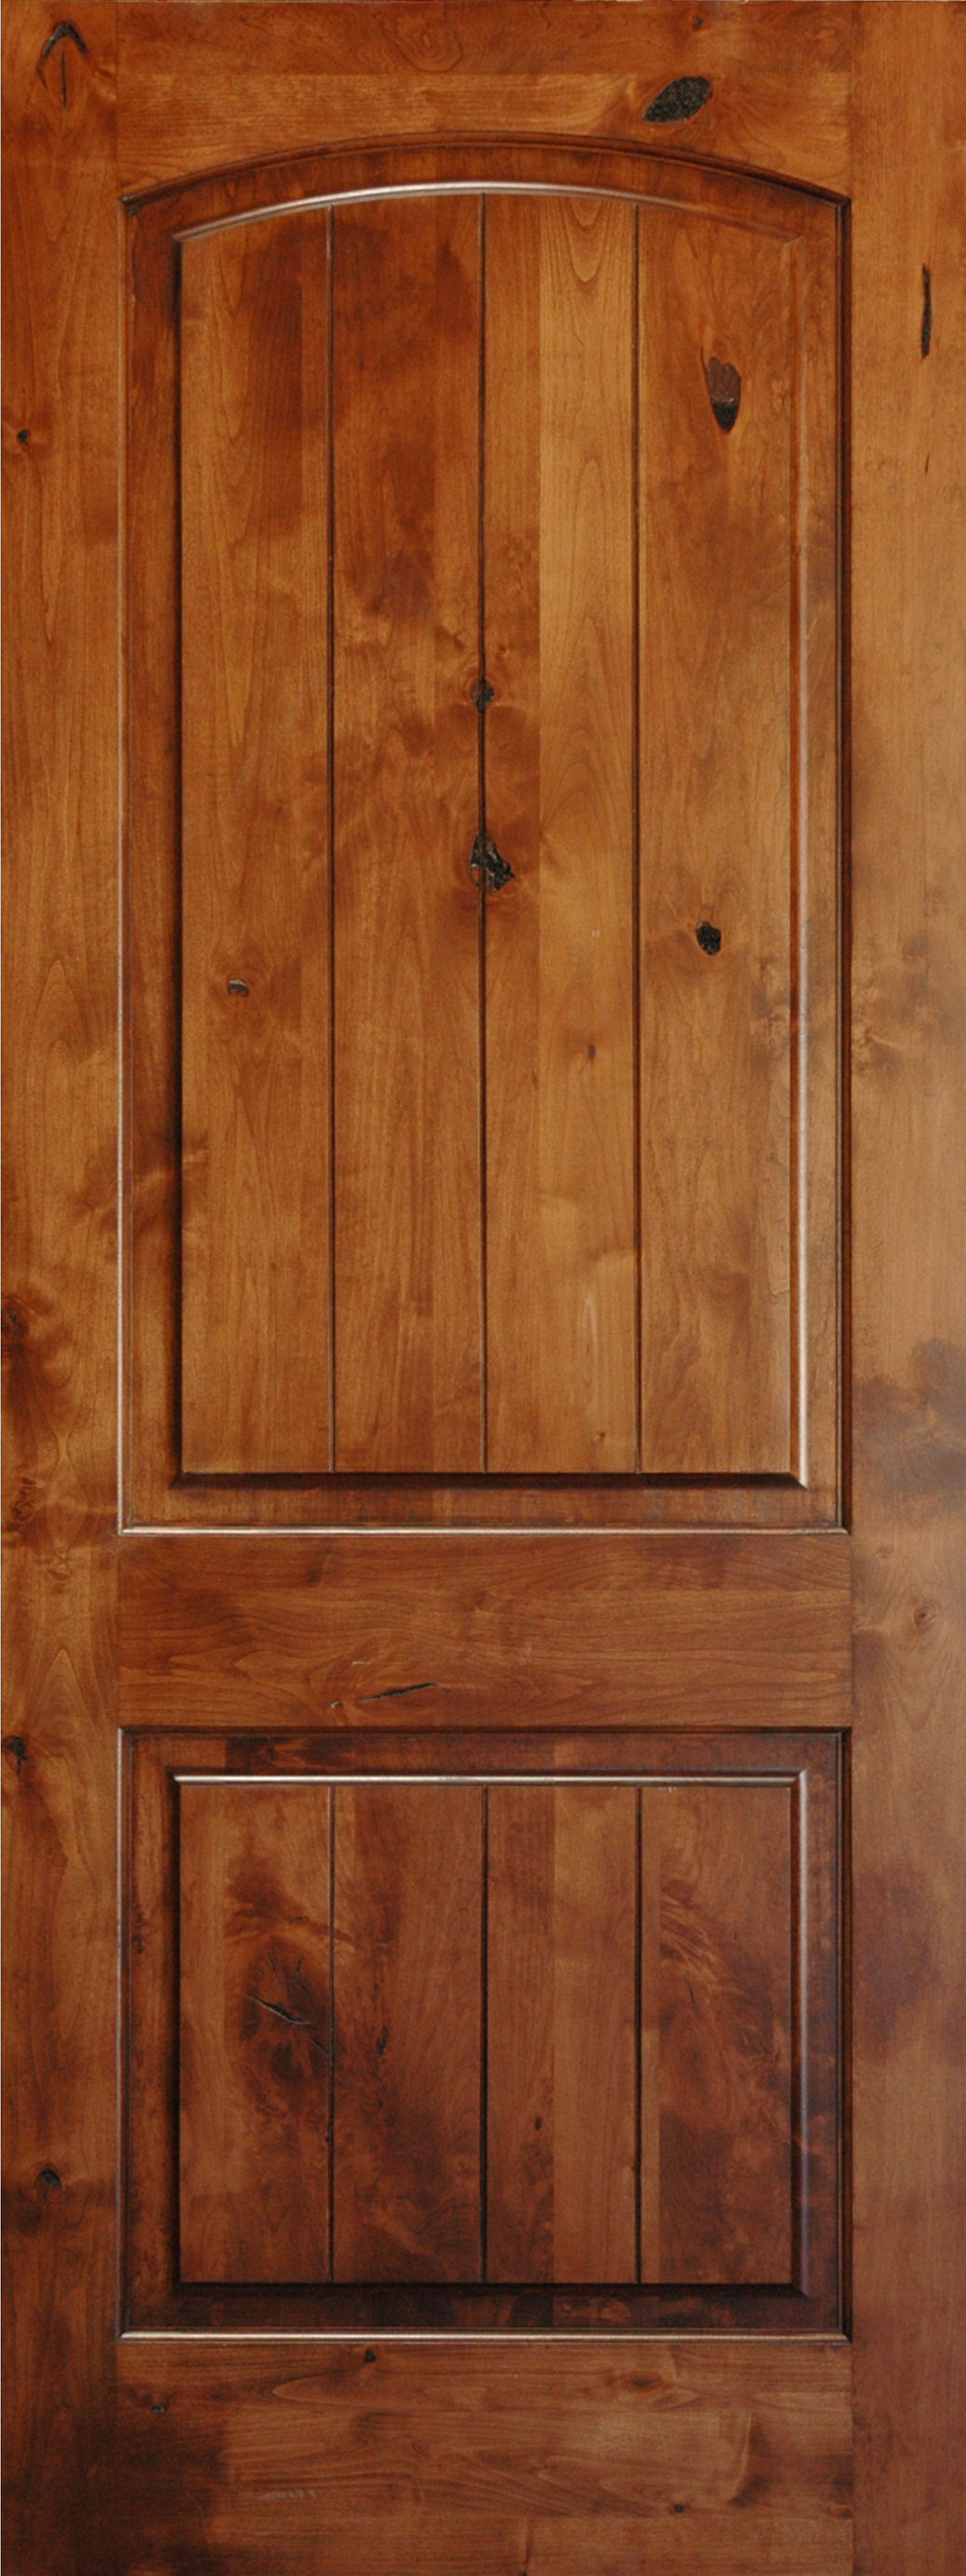 knotty alder 8 39 v groove arch 2 panel wood interior doors